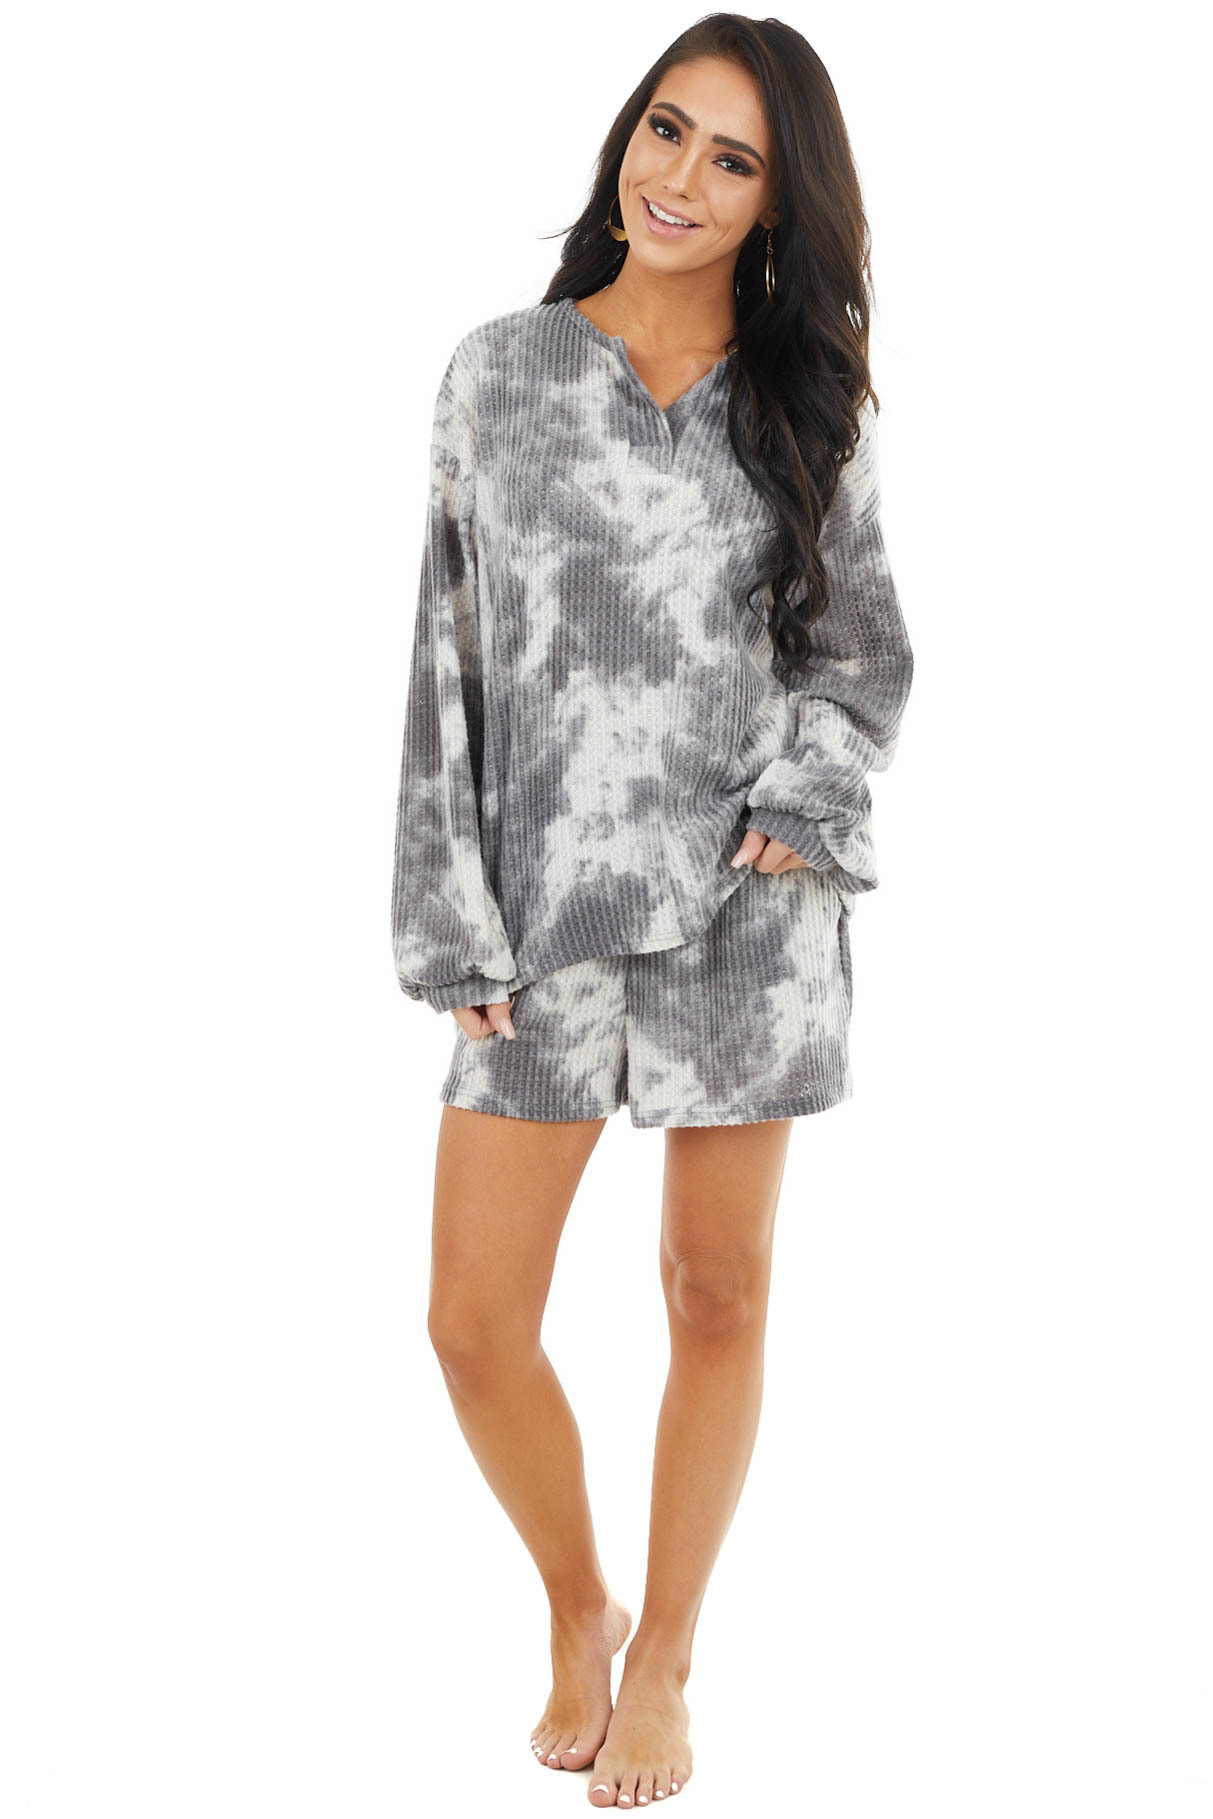 Charcoal Tie Dye Print Waffle Knit Long Sleeve V Neck Top